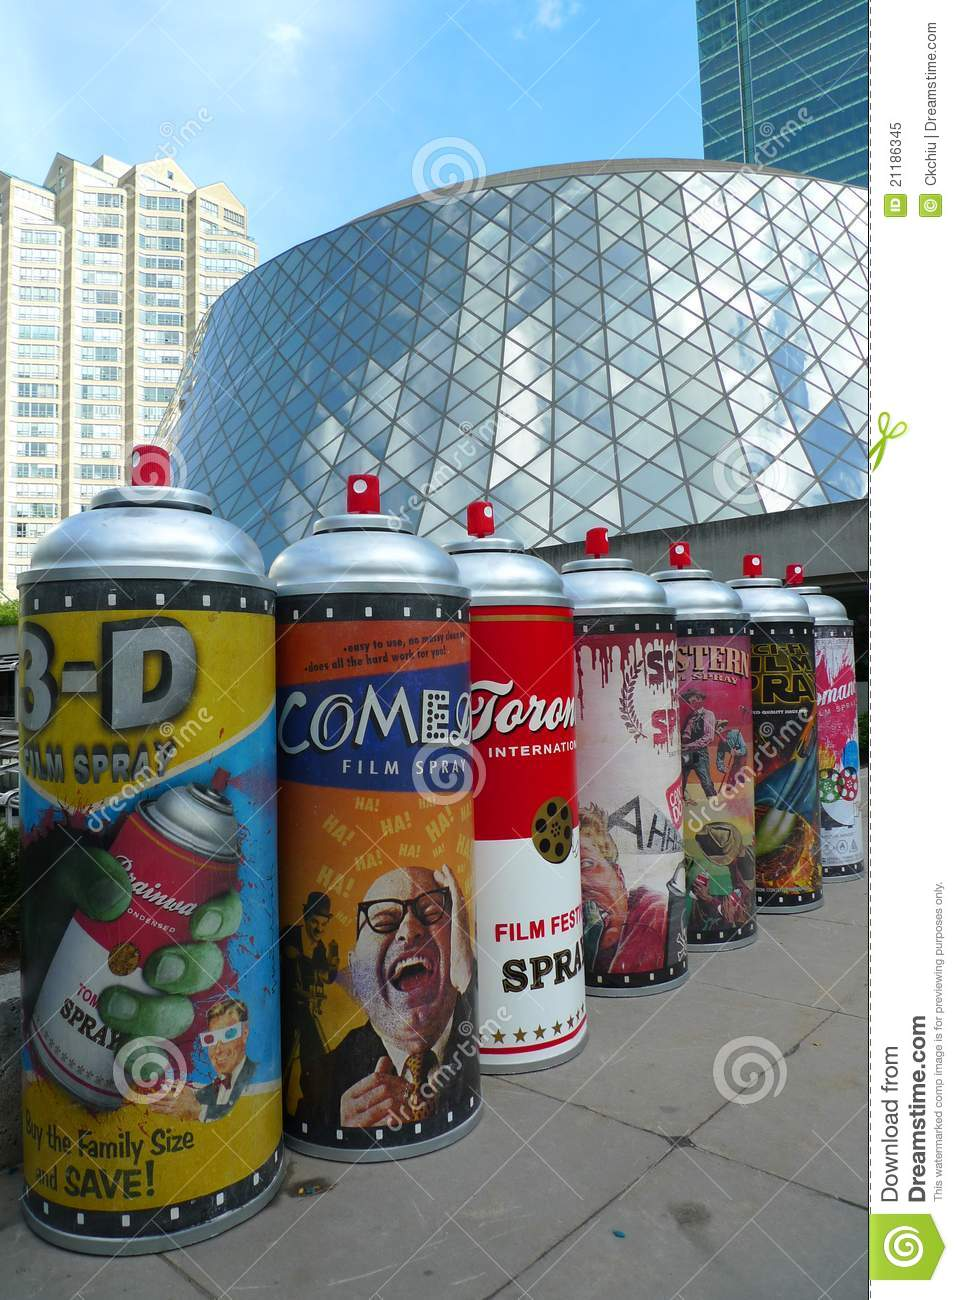 Toronto Film Festival and art installation